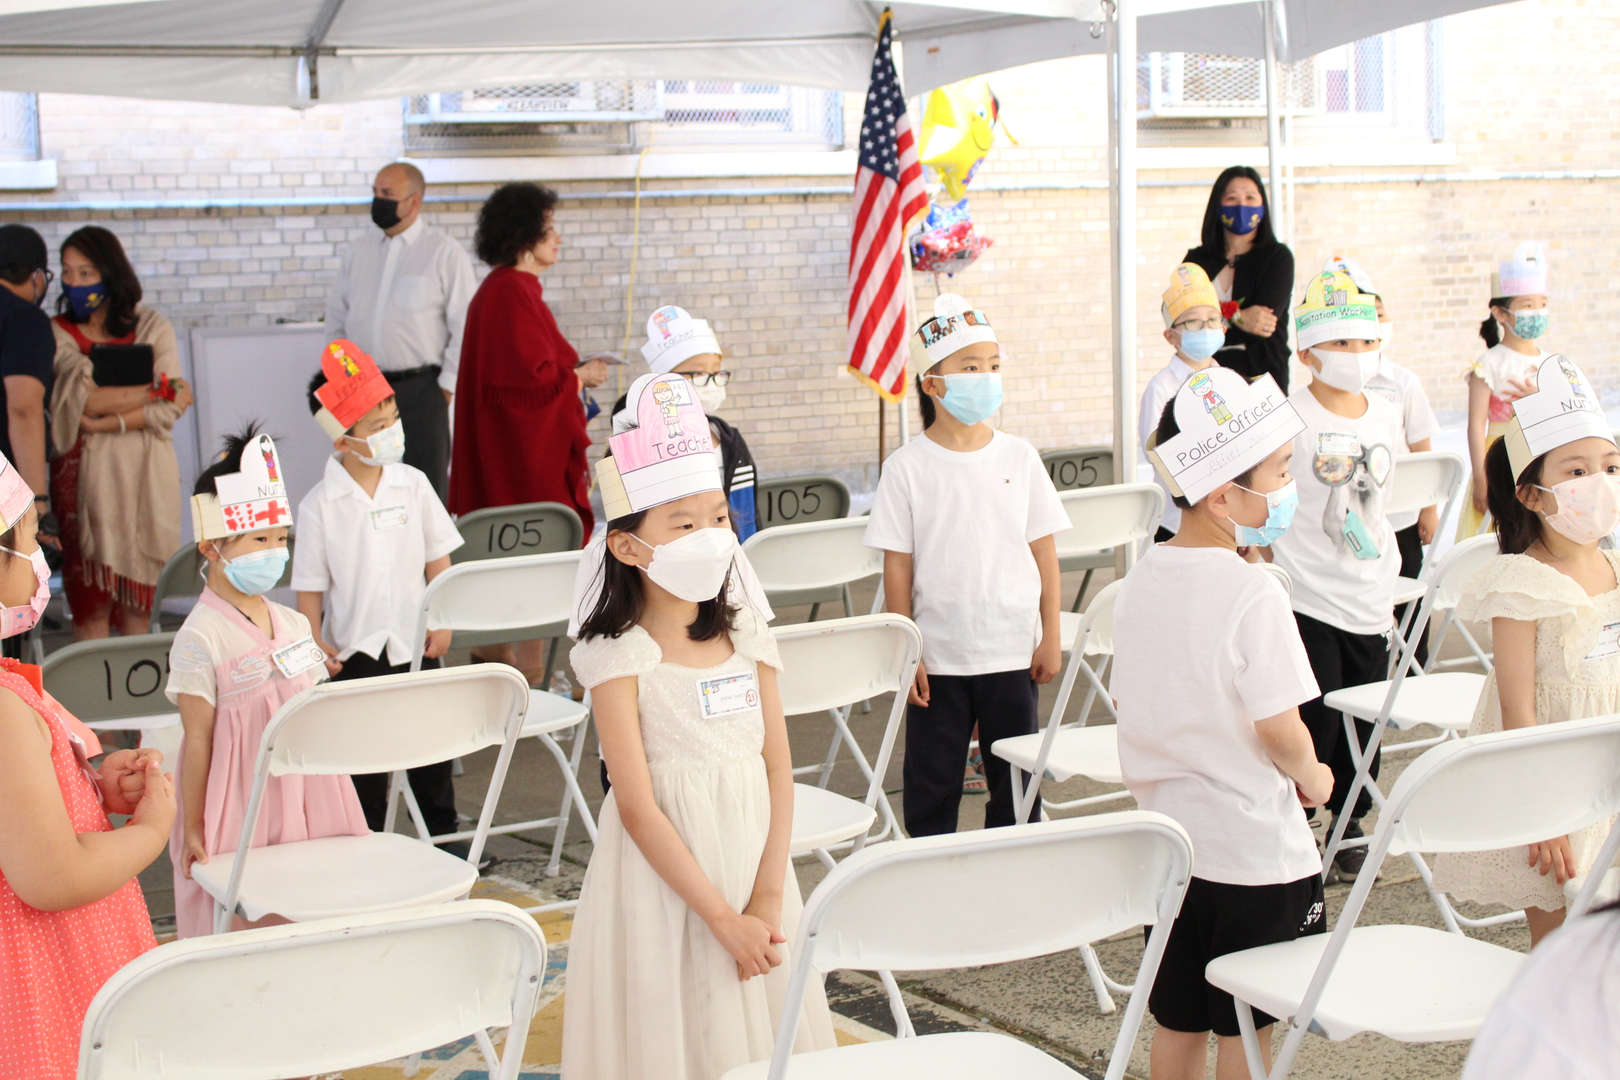 Kindergarten students face their parents and wave to them.